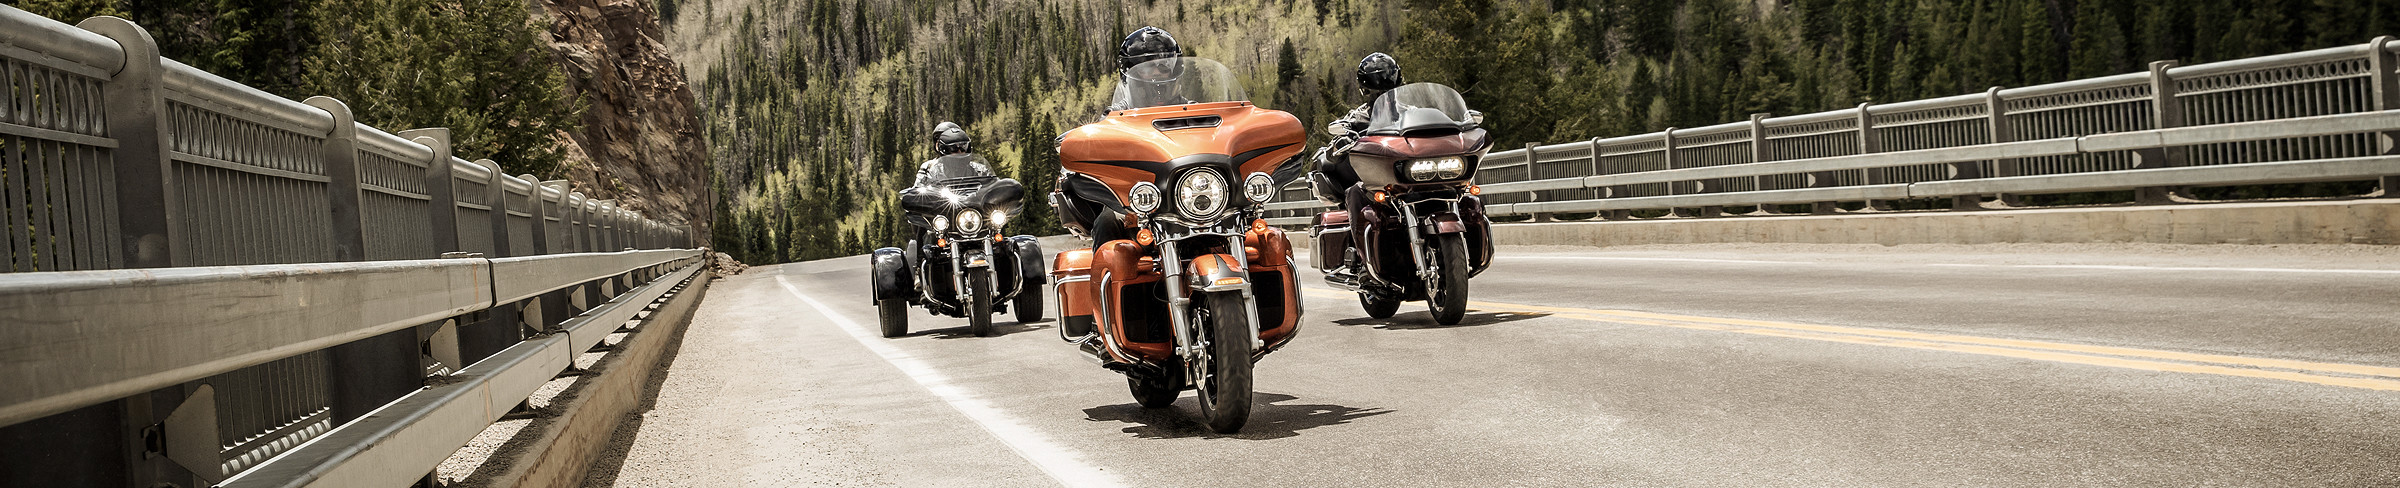 New Harley-Davidson Touring Ultra Limited Motorcycles for sale near Cleveland, Ohio